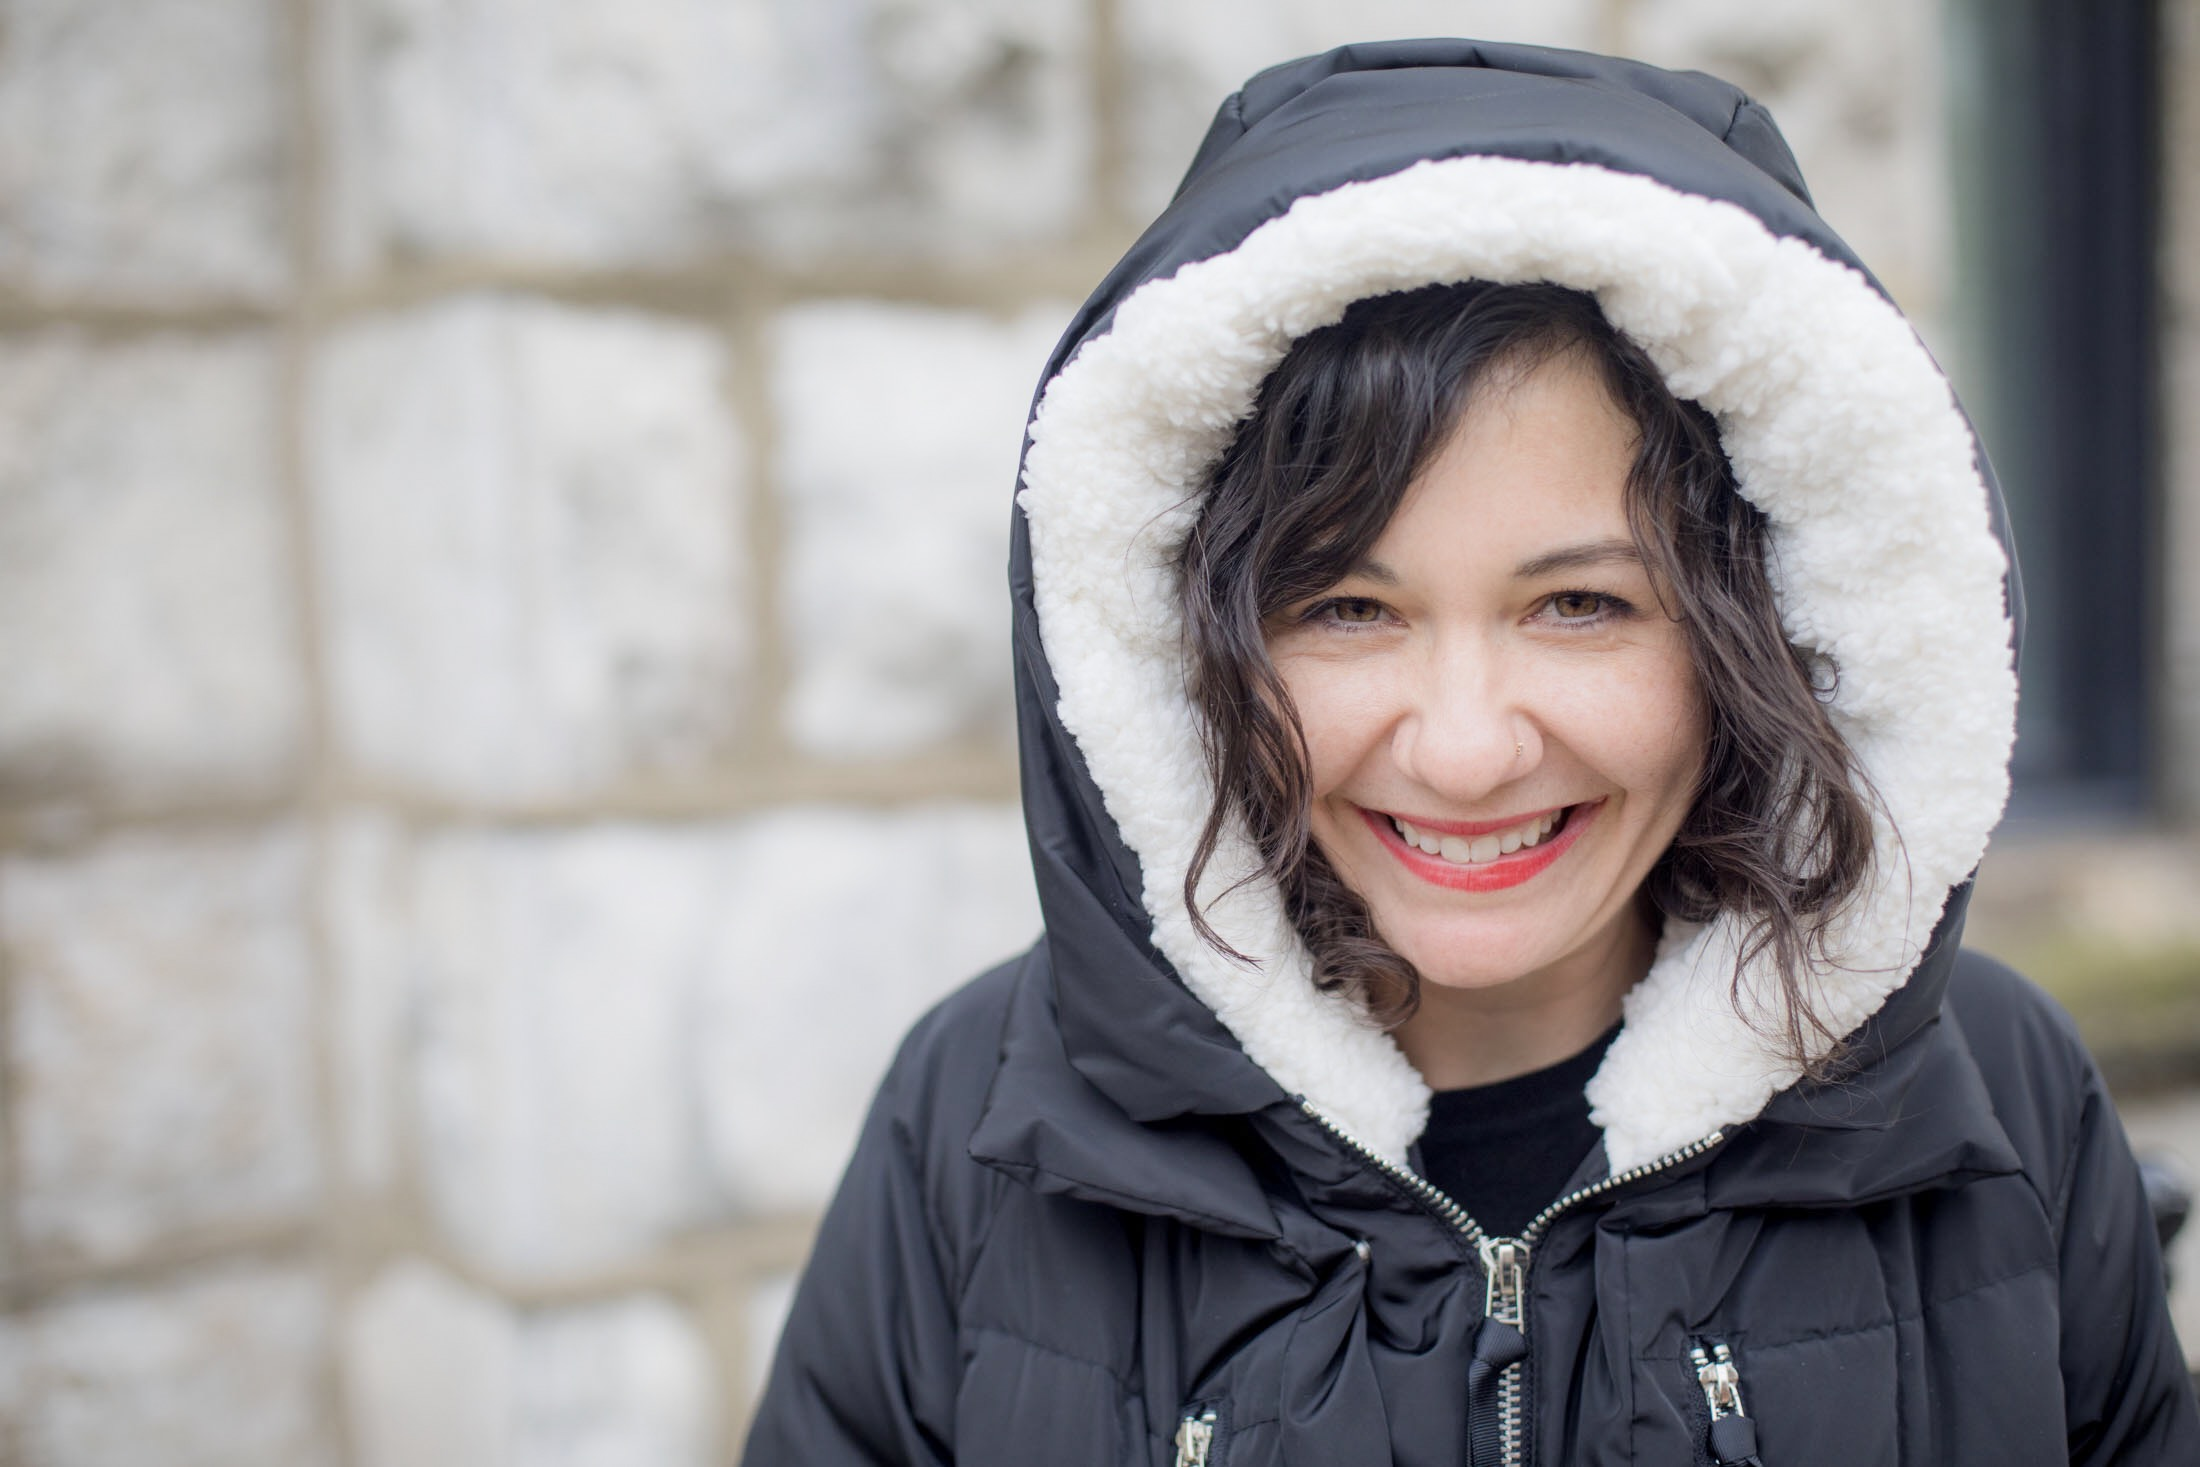 """So the Amazon Orolay thickened down jacket is """"THE COAT"""" —the """"it"""" coat of 2018-2019? We tried it. Check out the look, zippers, warmth & fit — for reals."""